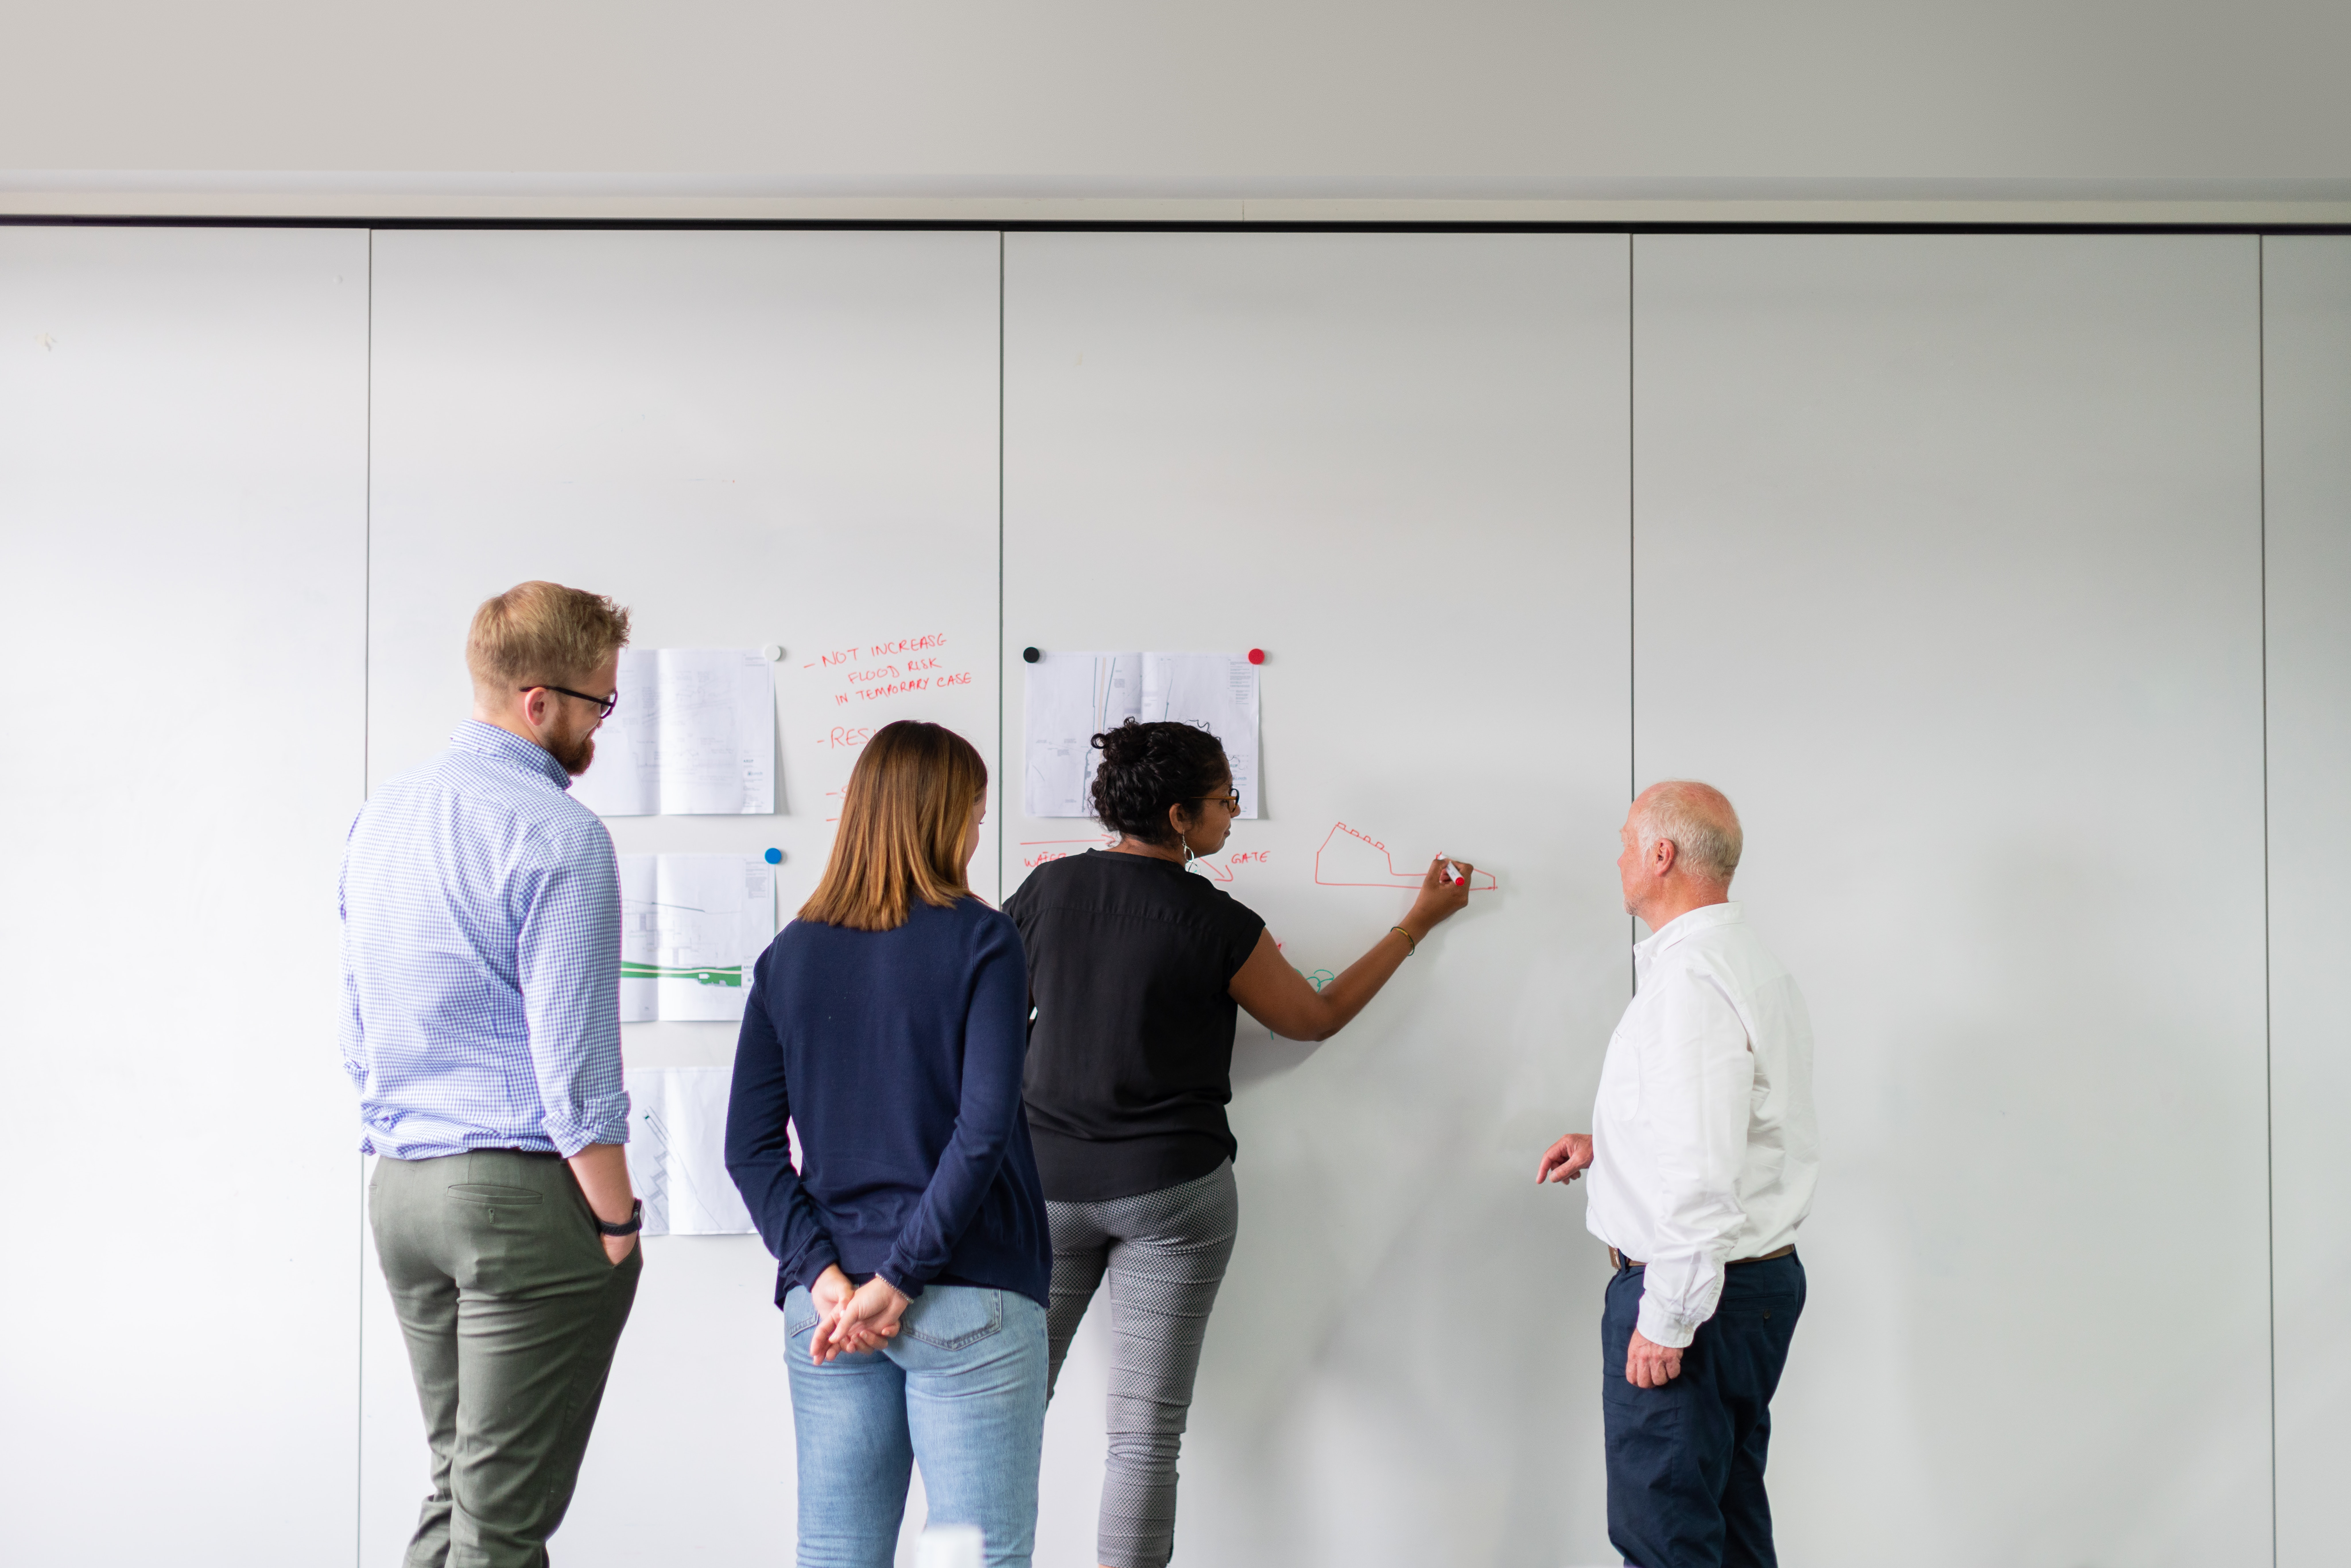 Four employees stand in front of a white board while one of them writes on it.